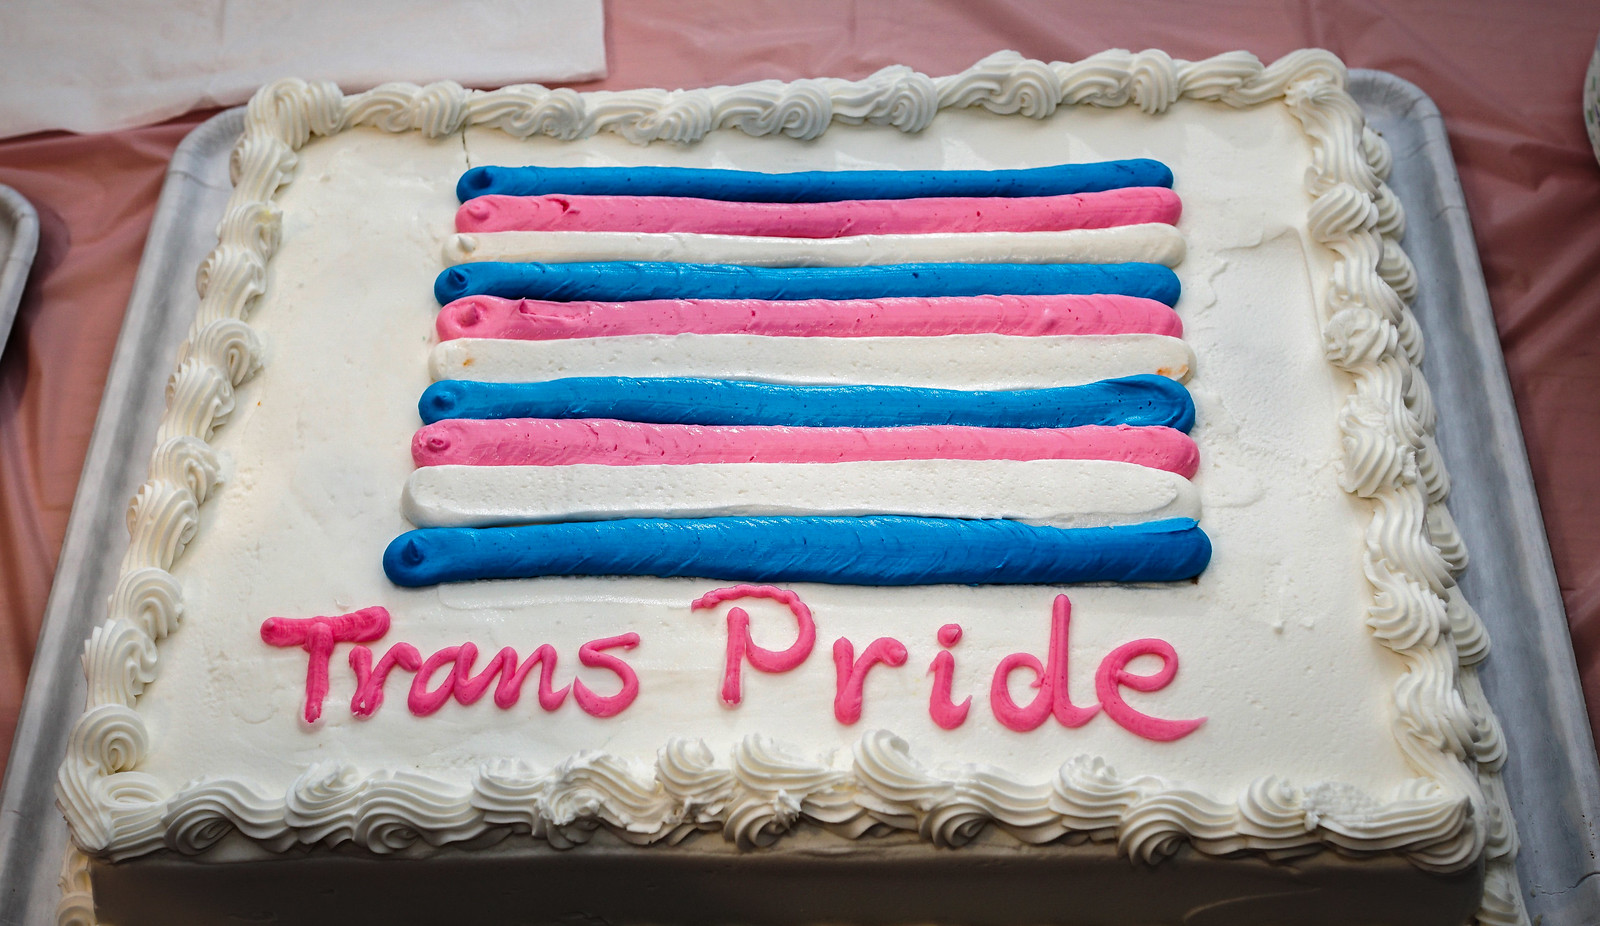 Thanks for publishing my Transgender Person Pride cake photo, New York Times